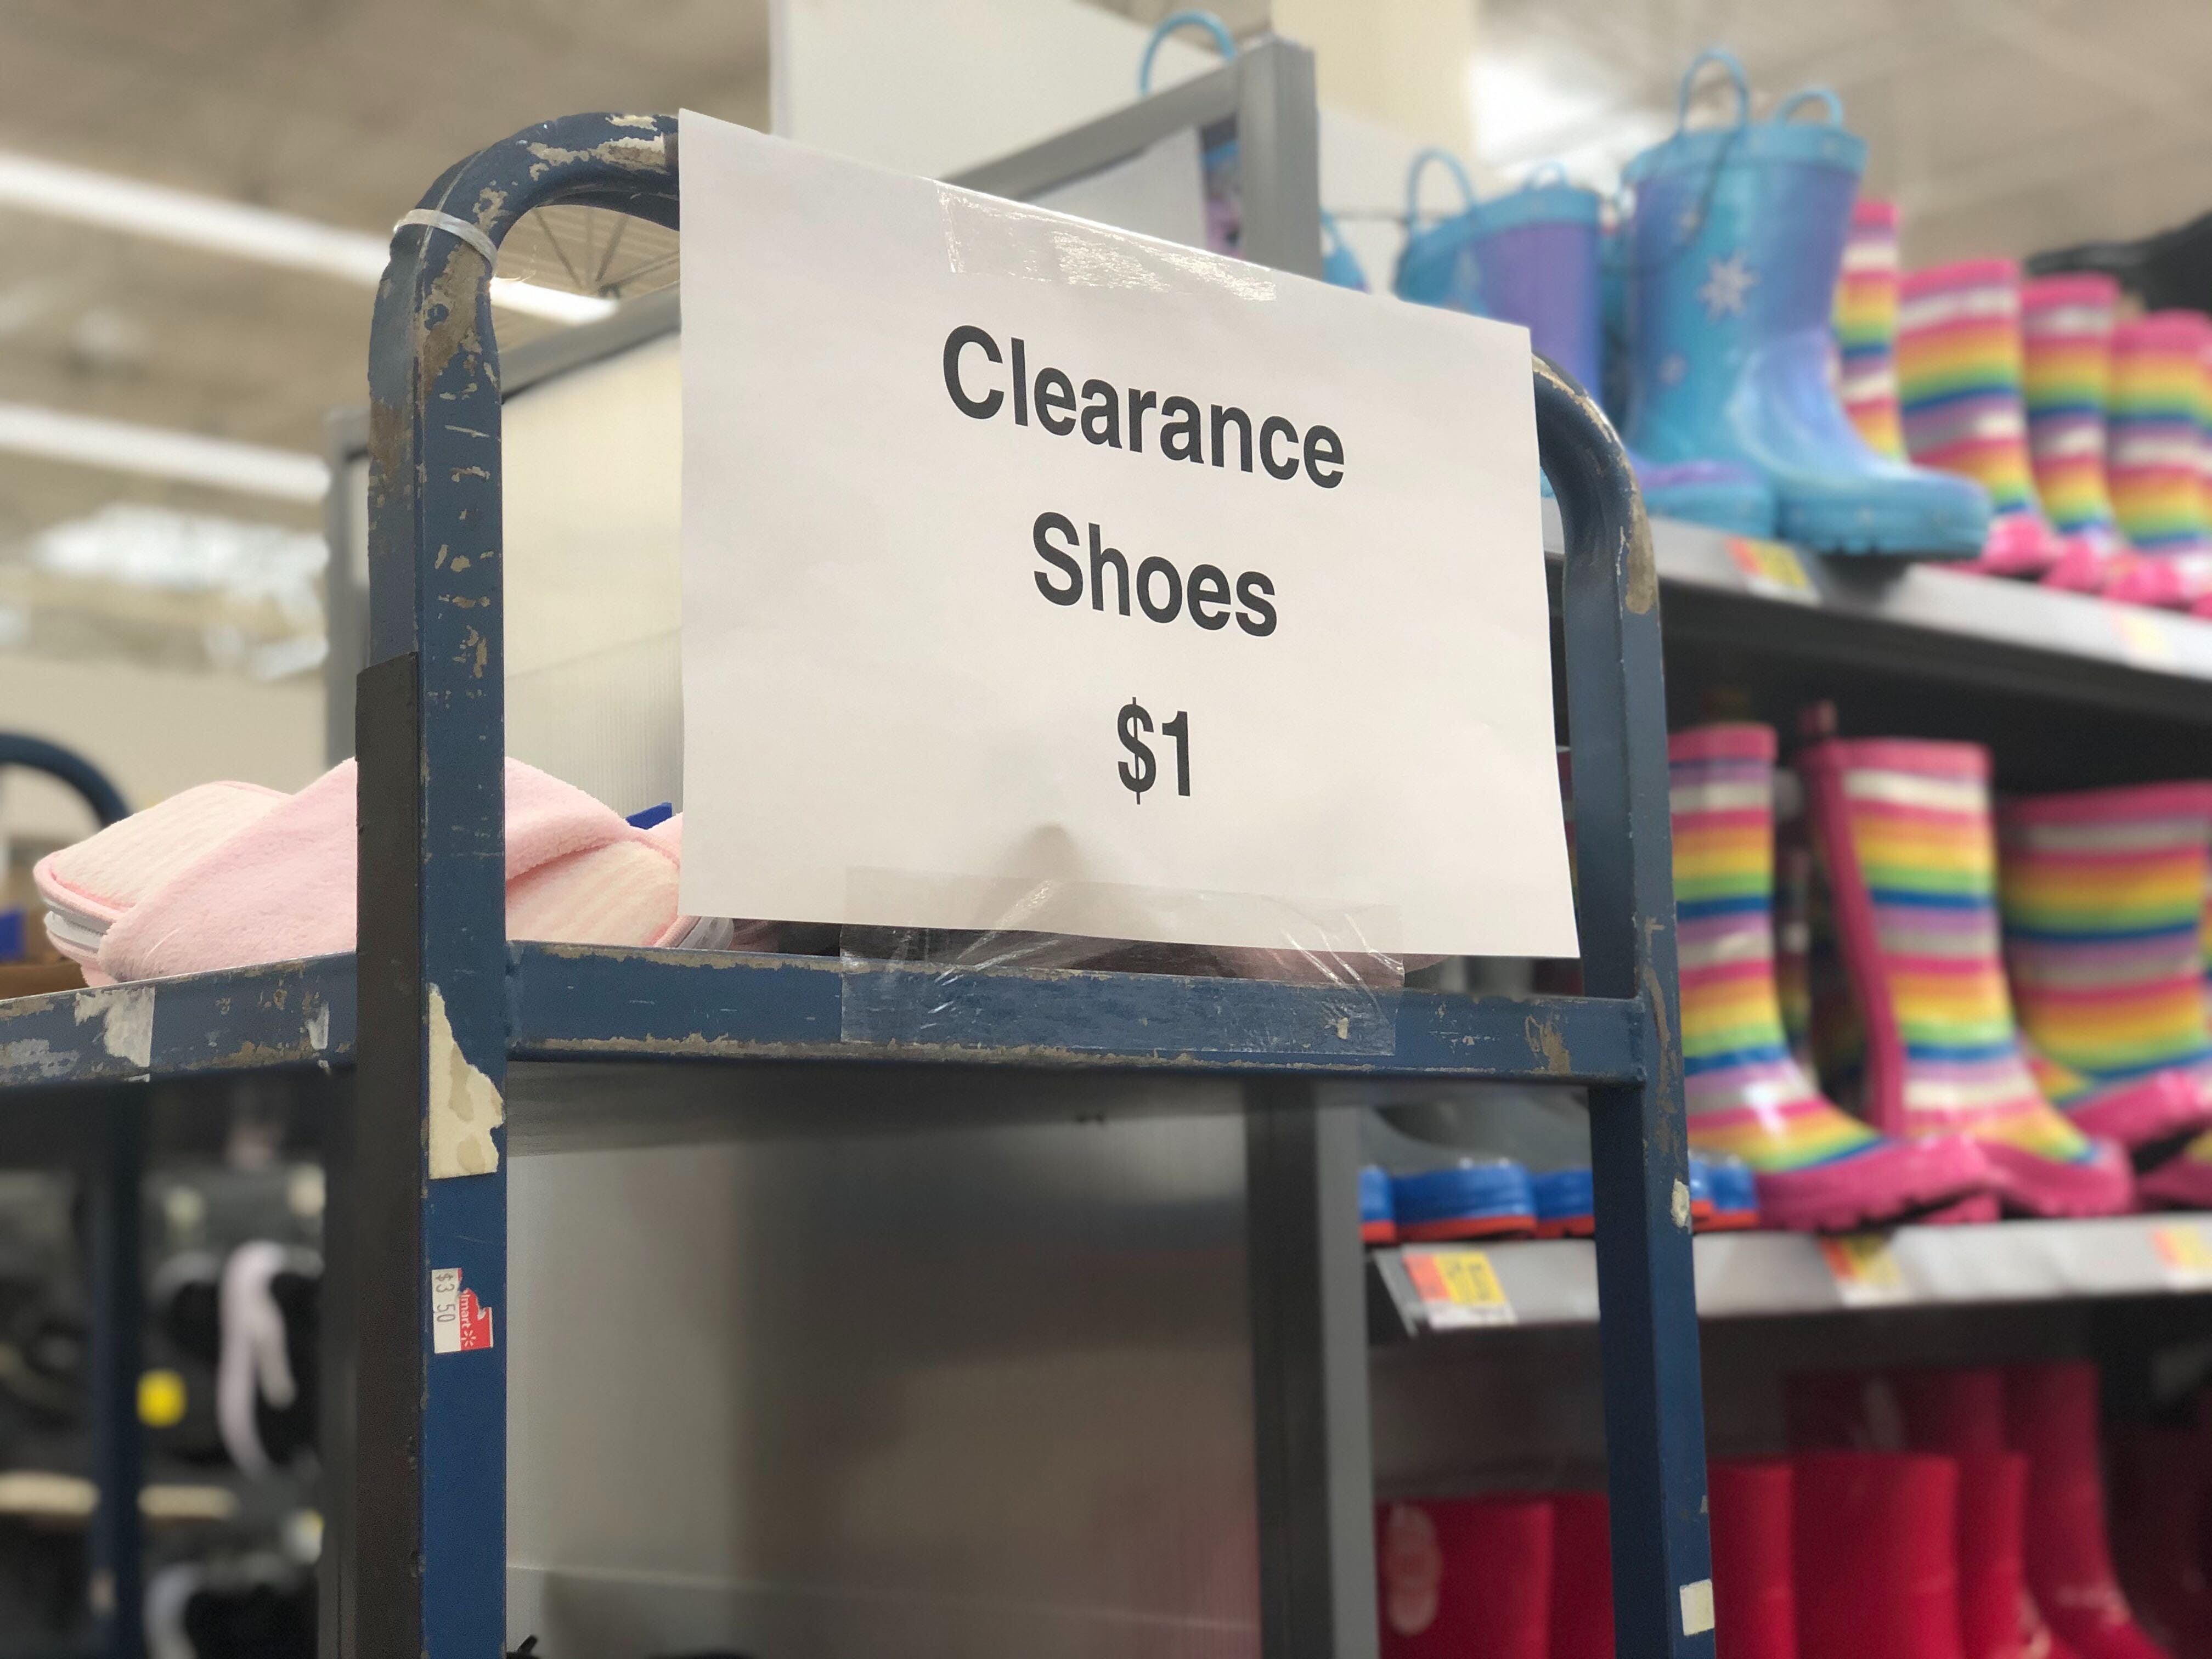 Shoe Clearance, as Low as $1 at Walmart